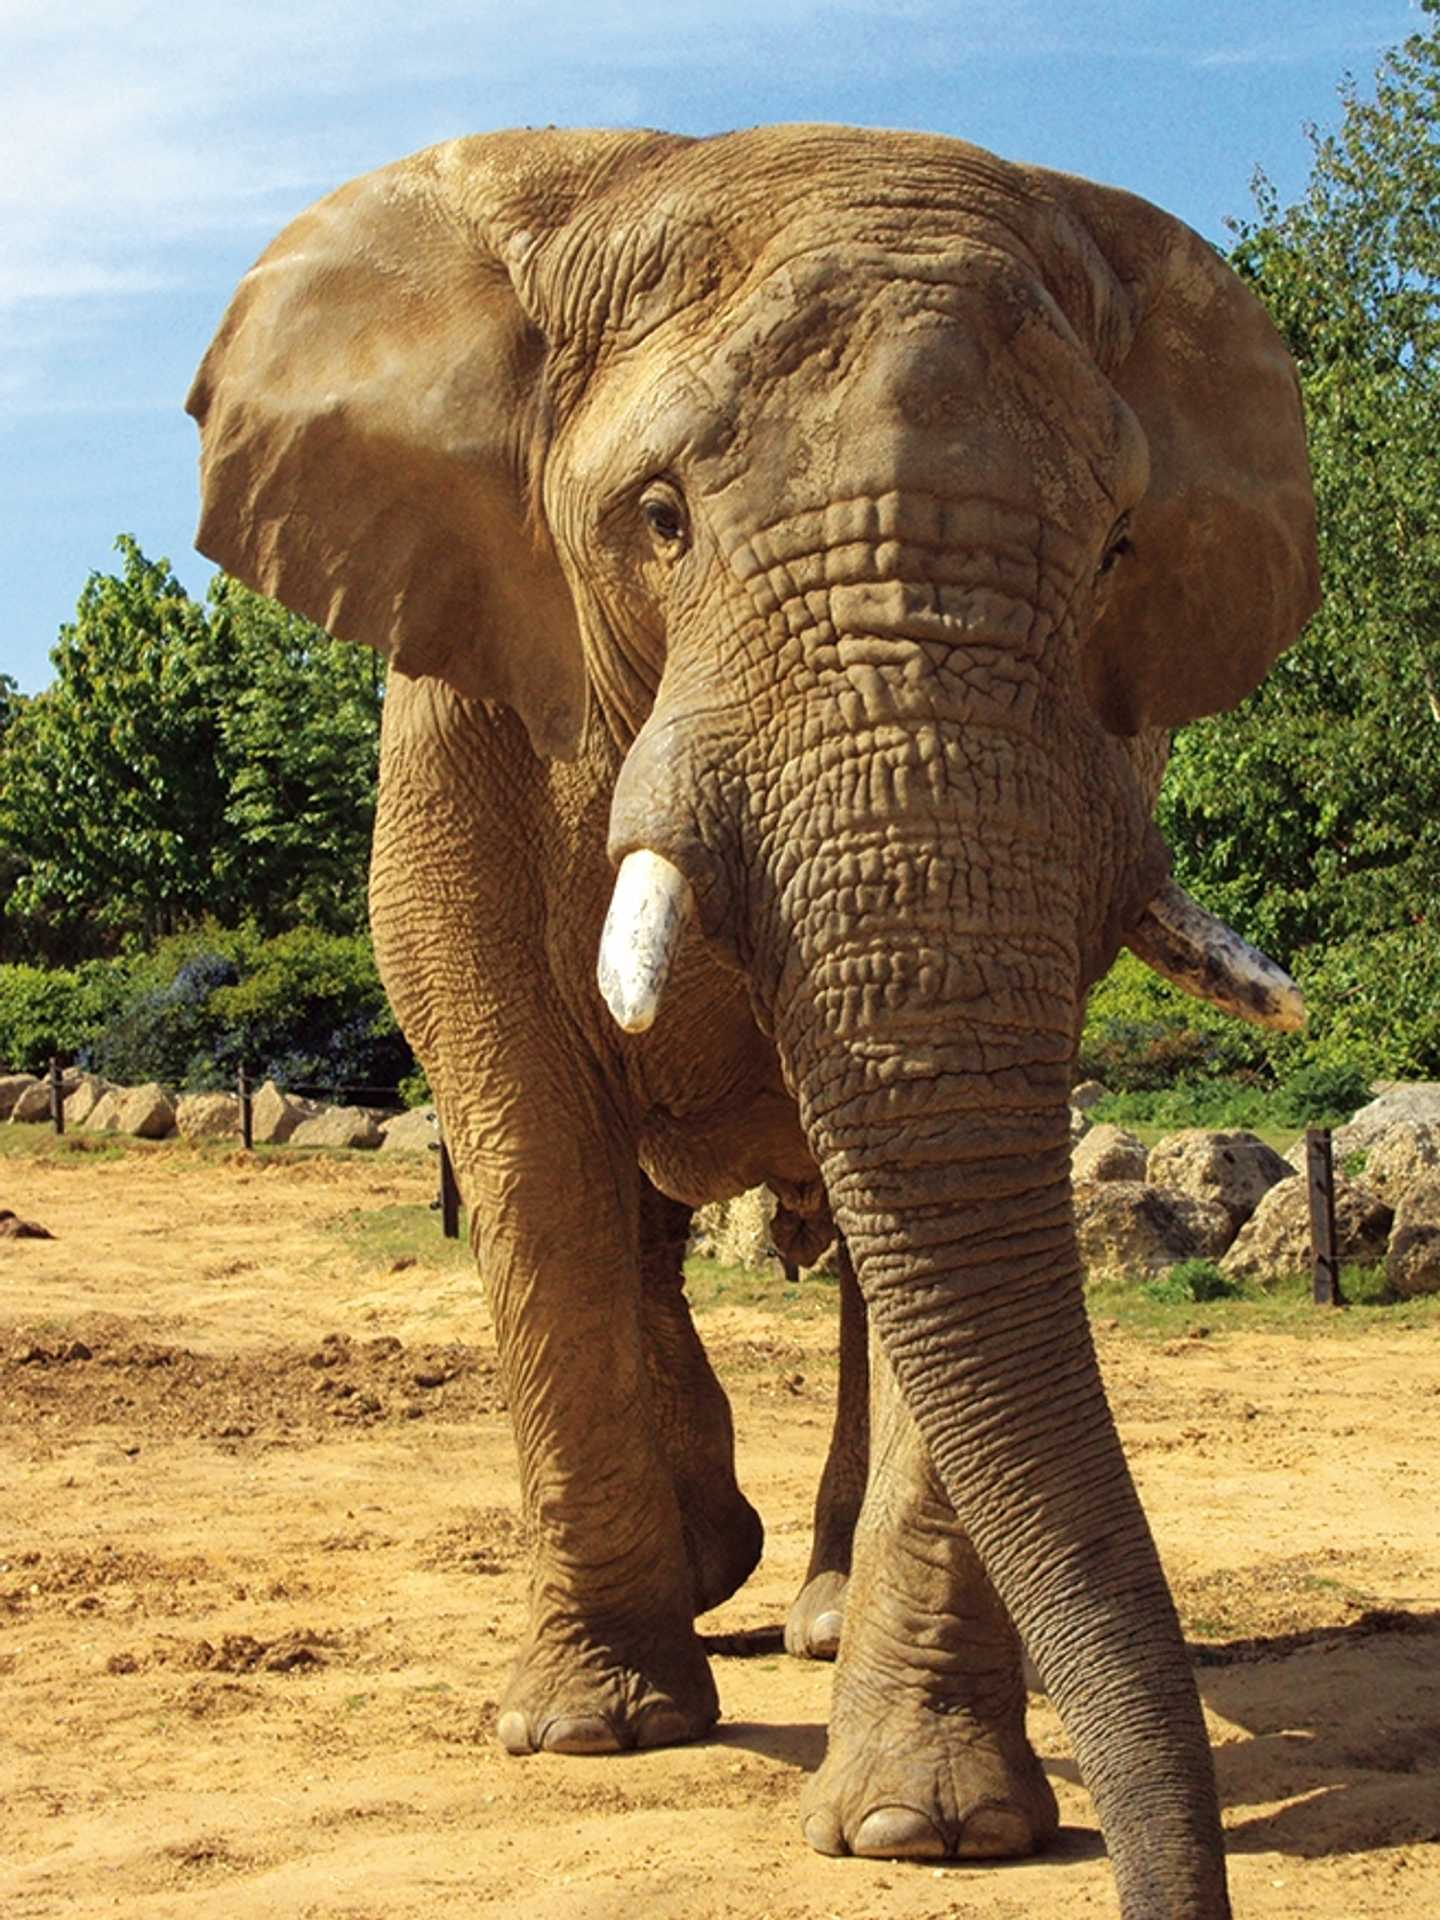 An elephant at Colchester Zoo